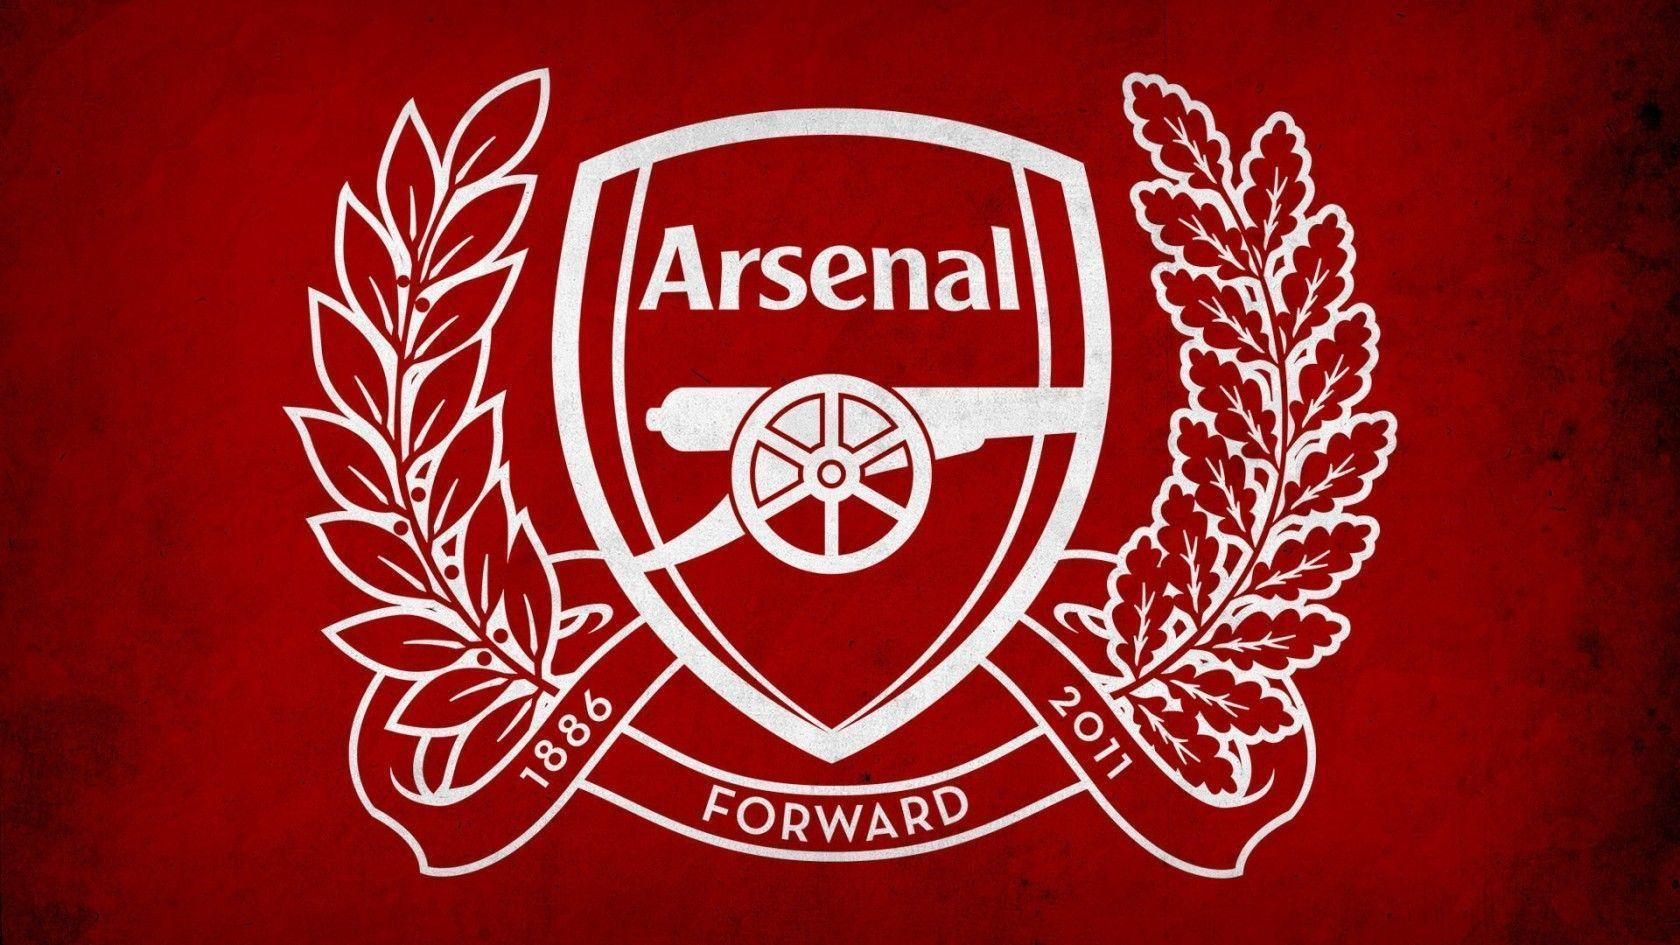 2015 Arsenal HD Wallpapers - HD 1920x1080p wallpaper download